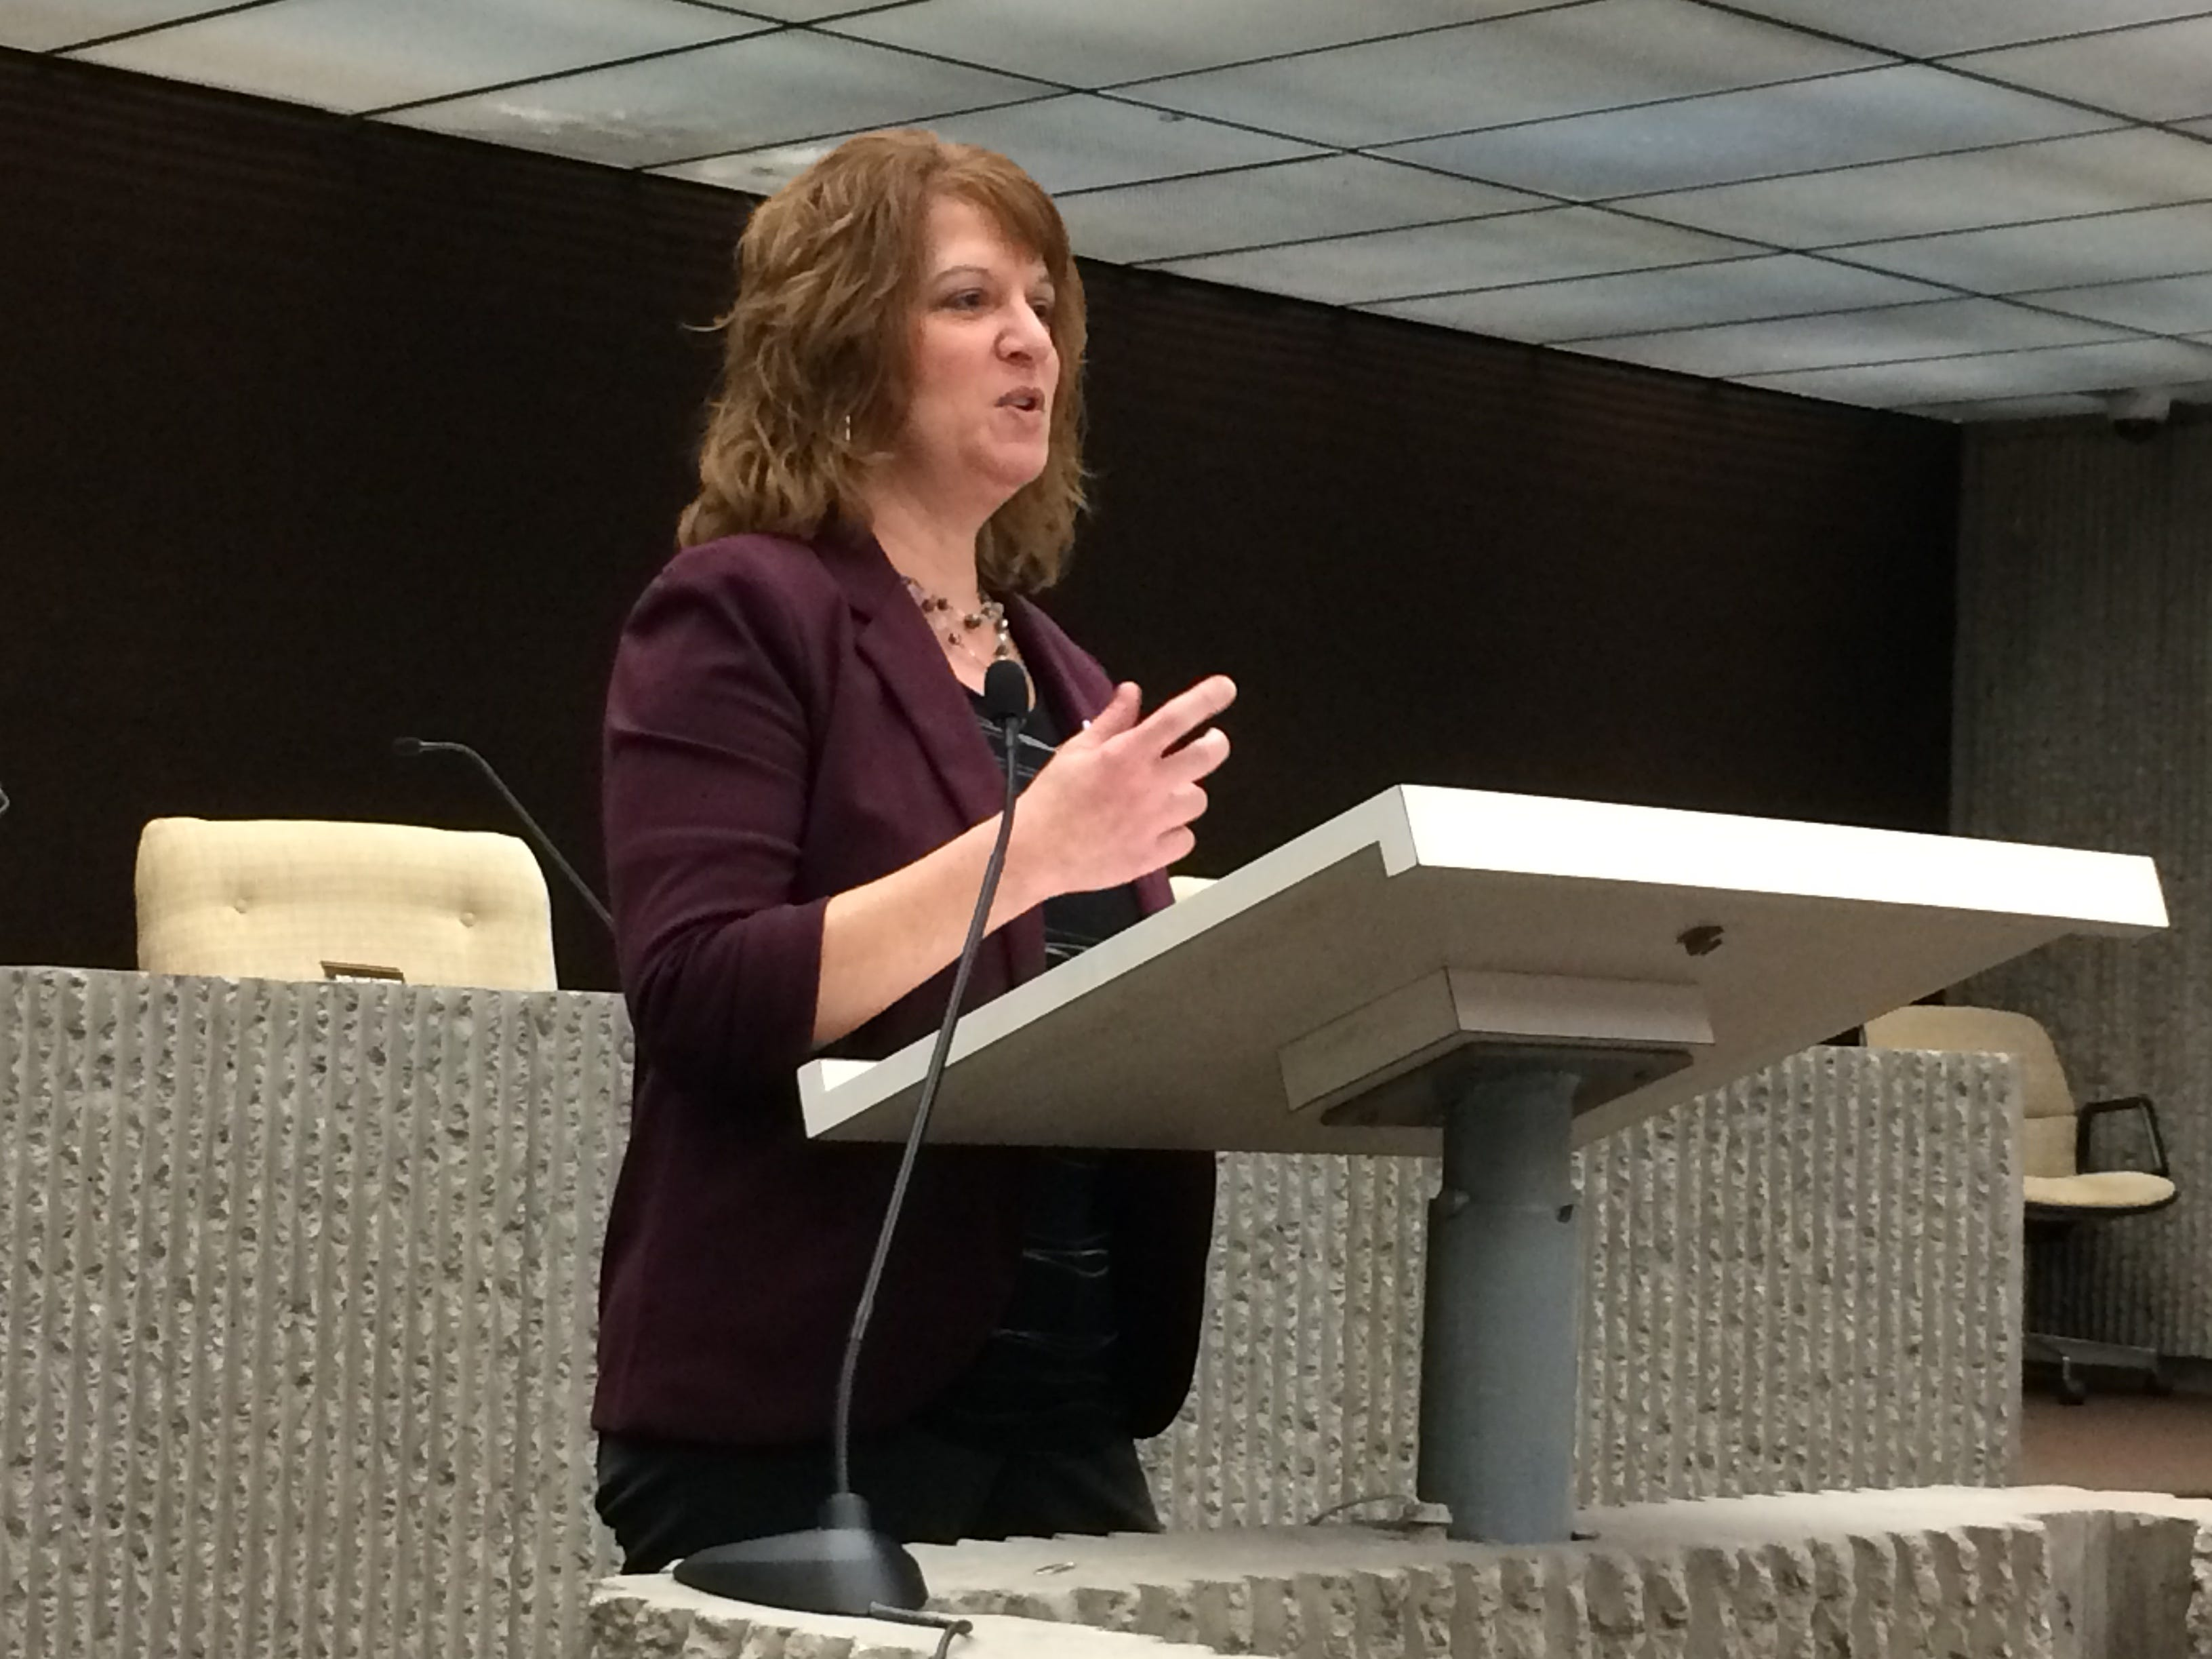 Gina Glass, co-director of Wayne County's JDAI, speaks during an expanded Juvenile Detention Alternatives Initiative steering committee meeting Wednesday.